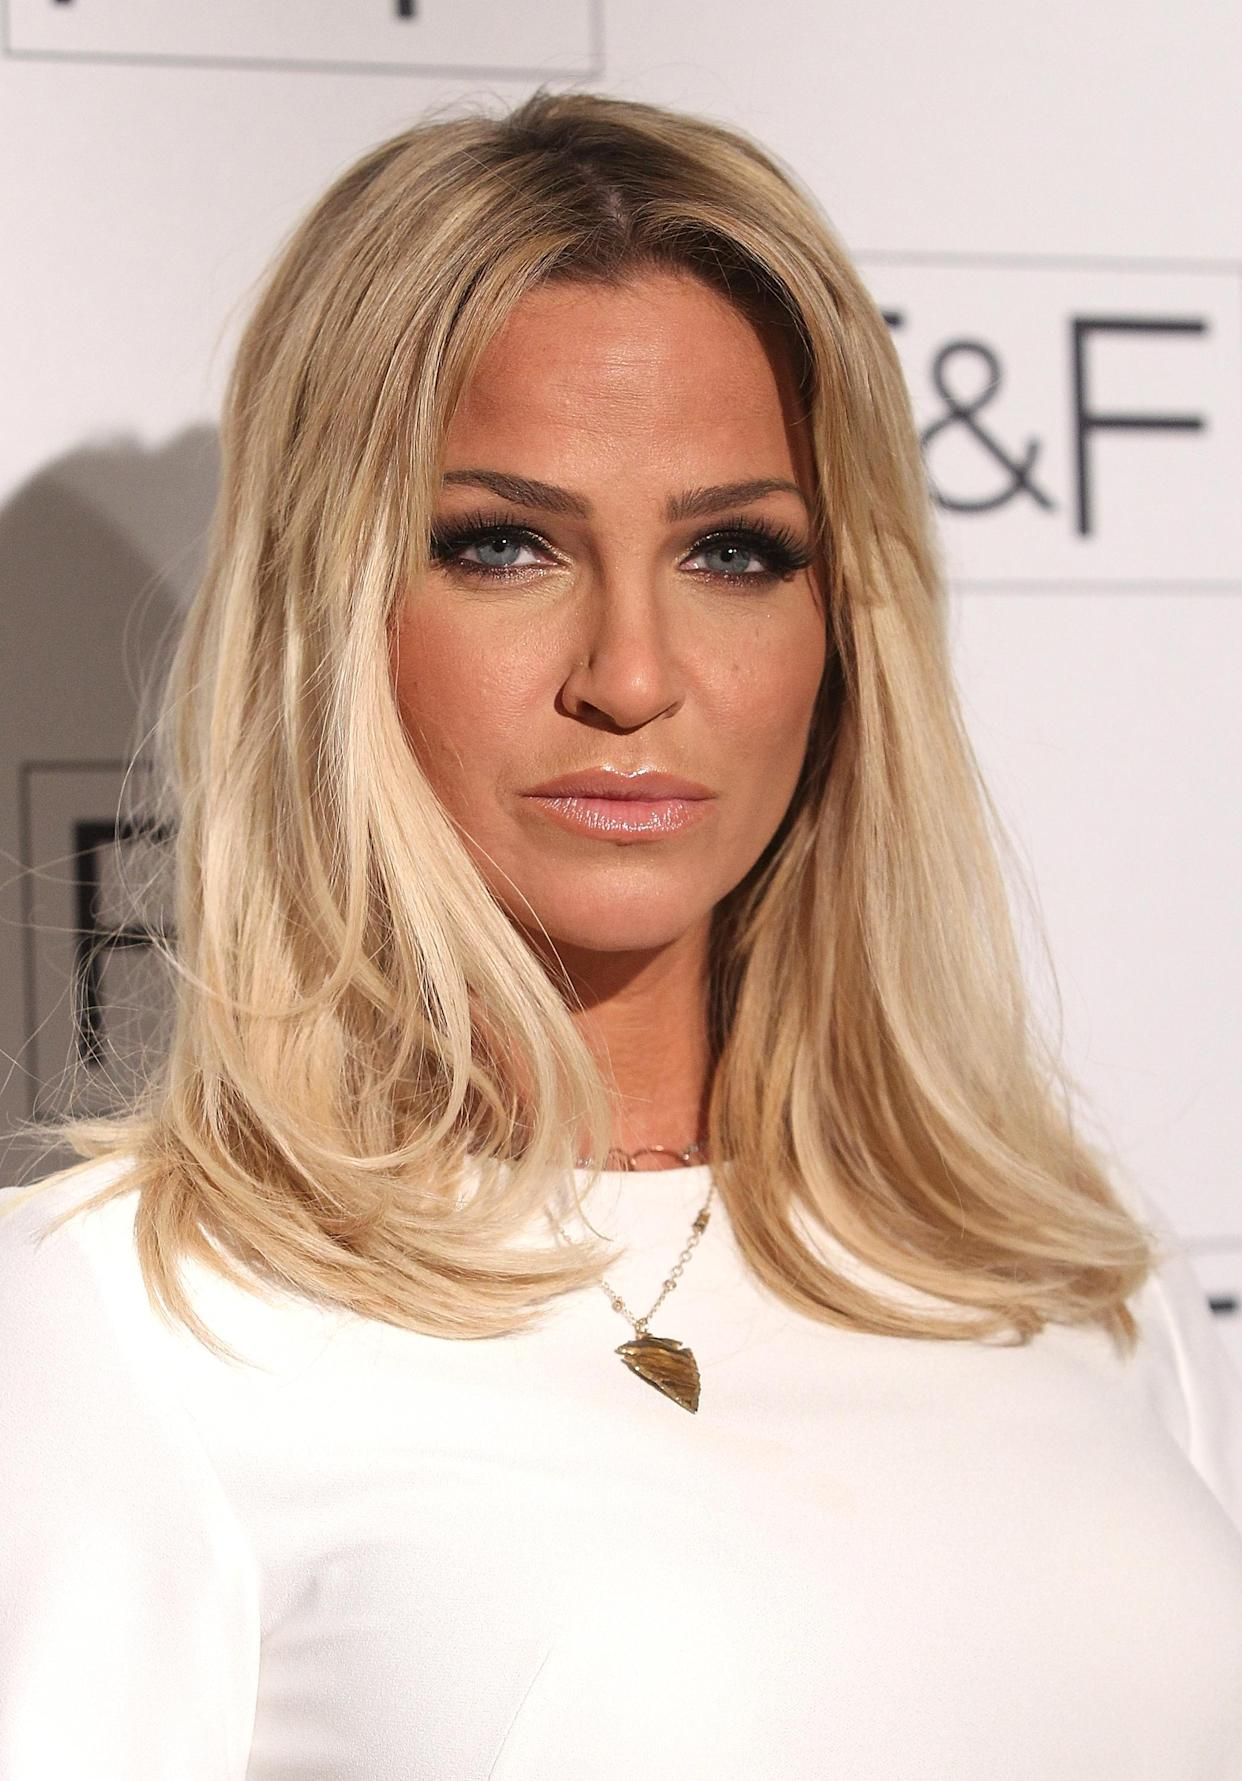 LONDON, ENGLAND - APRIL 21:  Sarah Harding attends The F&F AW15 show at The Savoy Hotel on April 21, 2015 in London, England.  (Photo by Danny Martindale/WireImage)